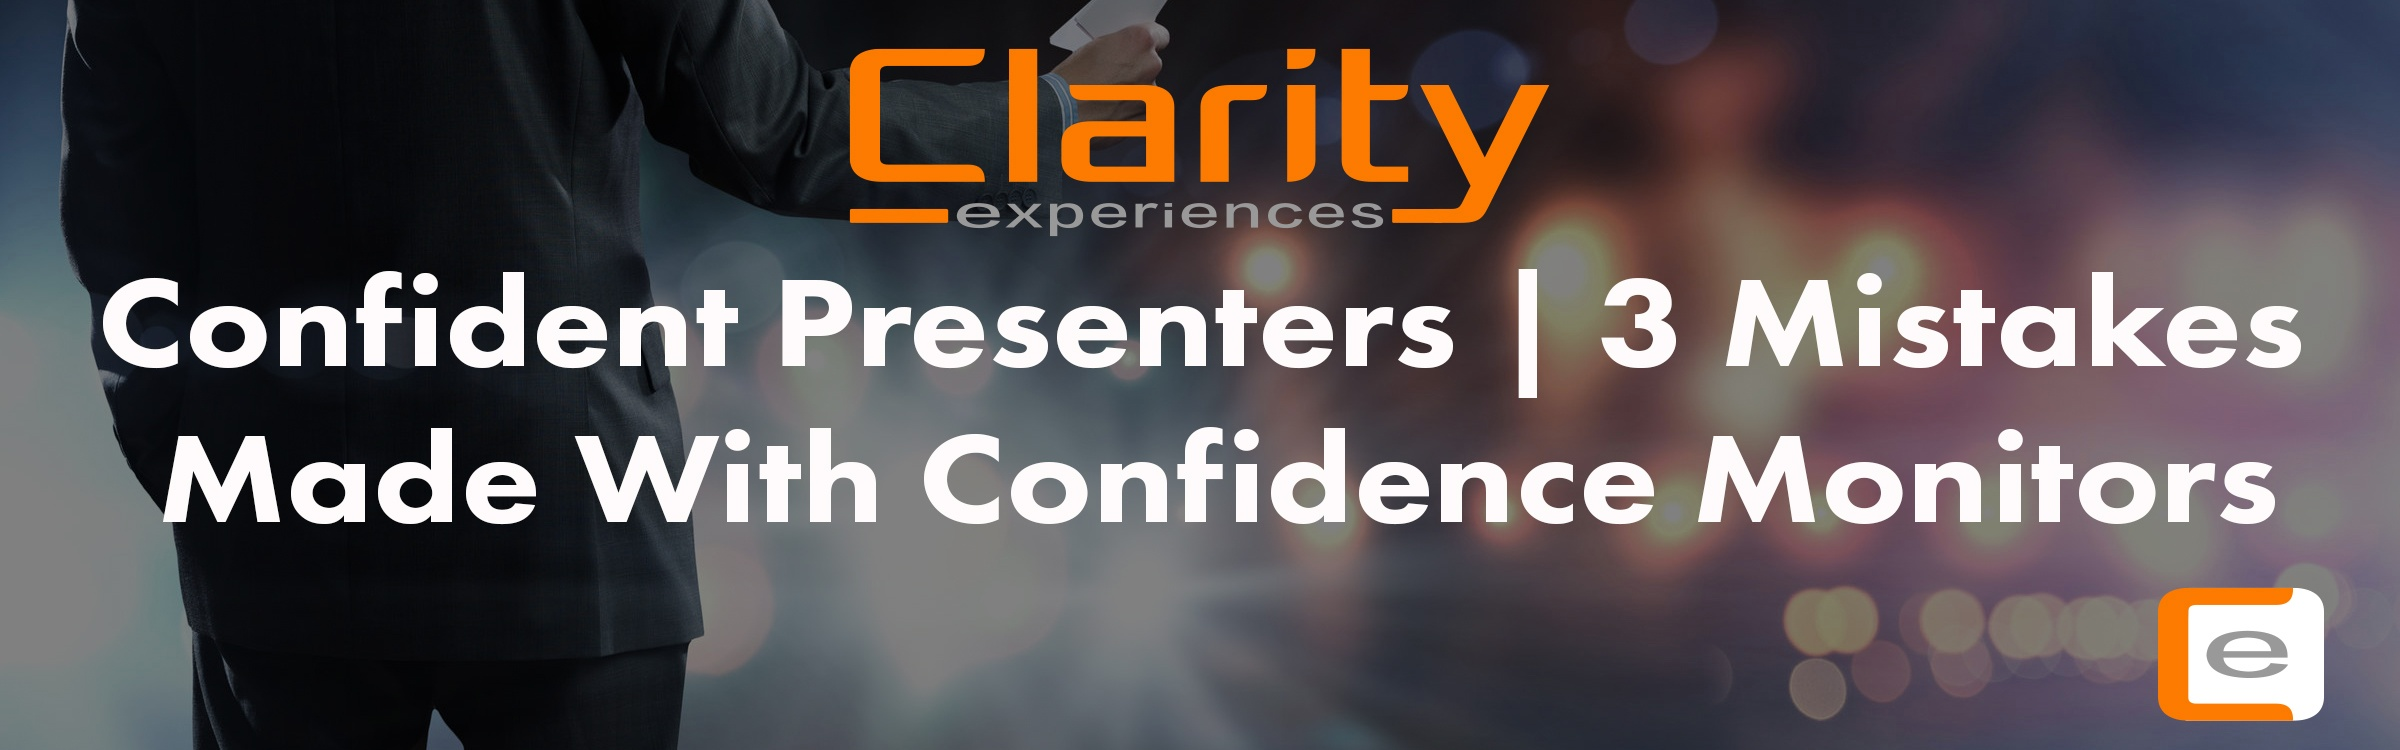 Confident Presenters | 3 Mistakes Made with Confidence Monitors